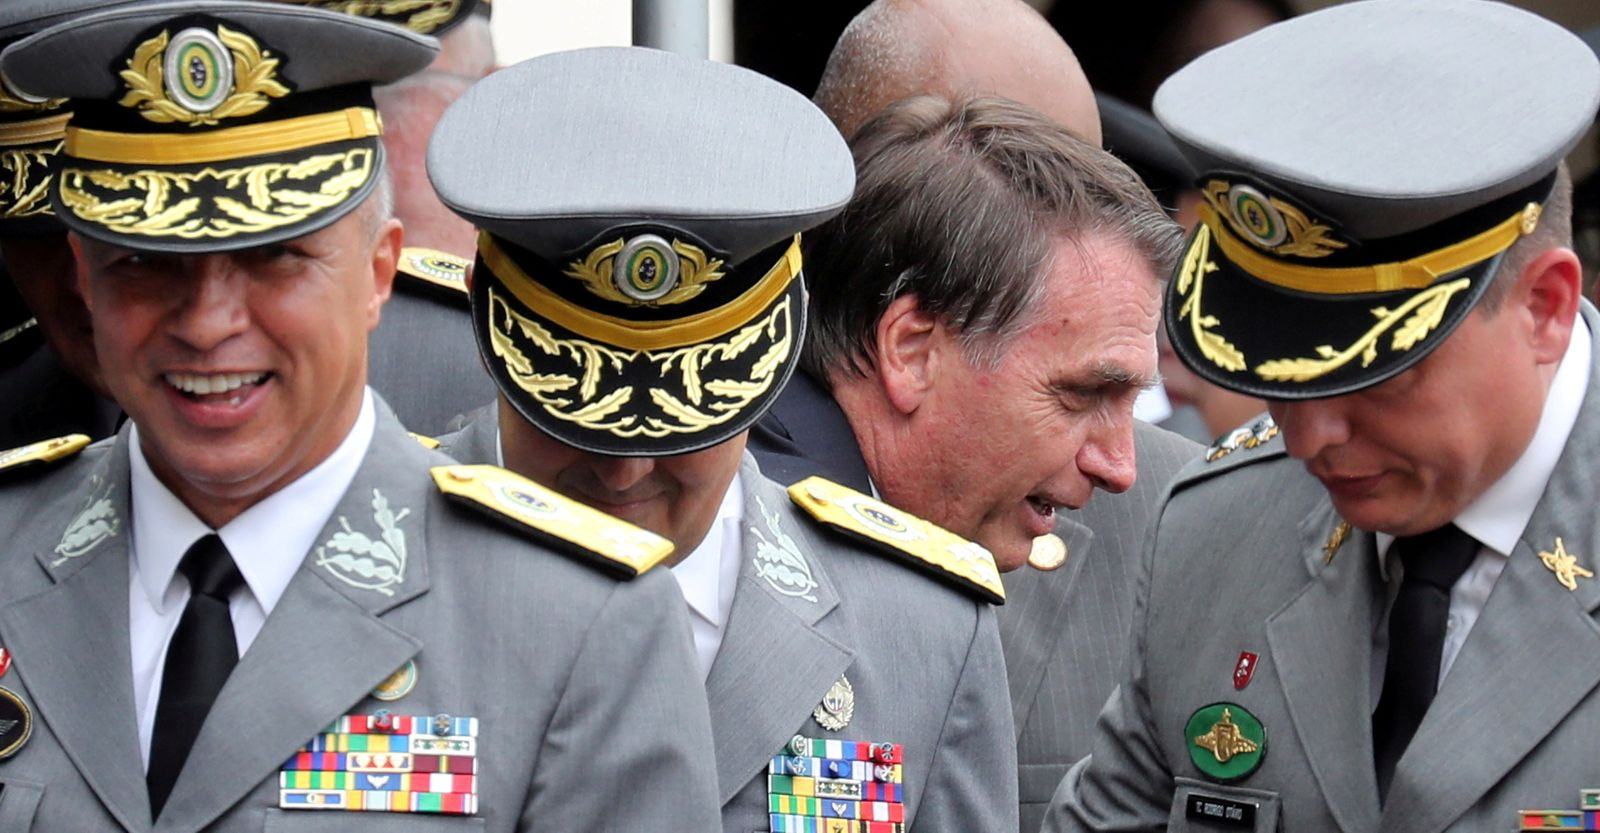 FILE PHOTO: Brazilian President-elect Bolsonaro attends the graduation of the officers of the Military Academy of Agulhas Negras in Resende